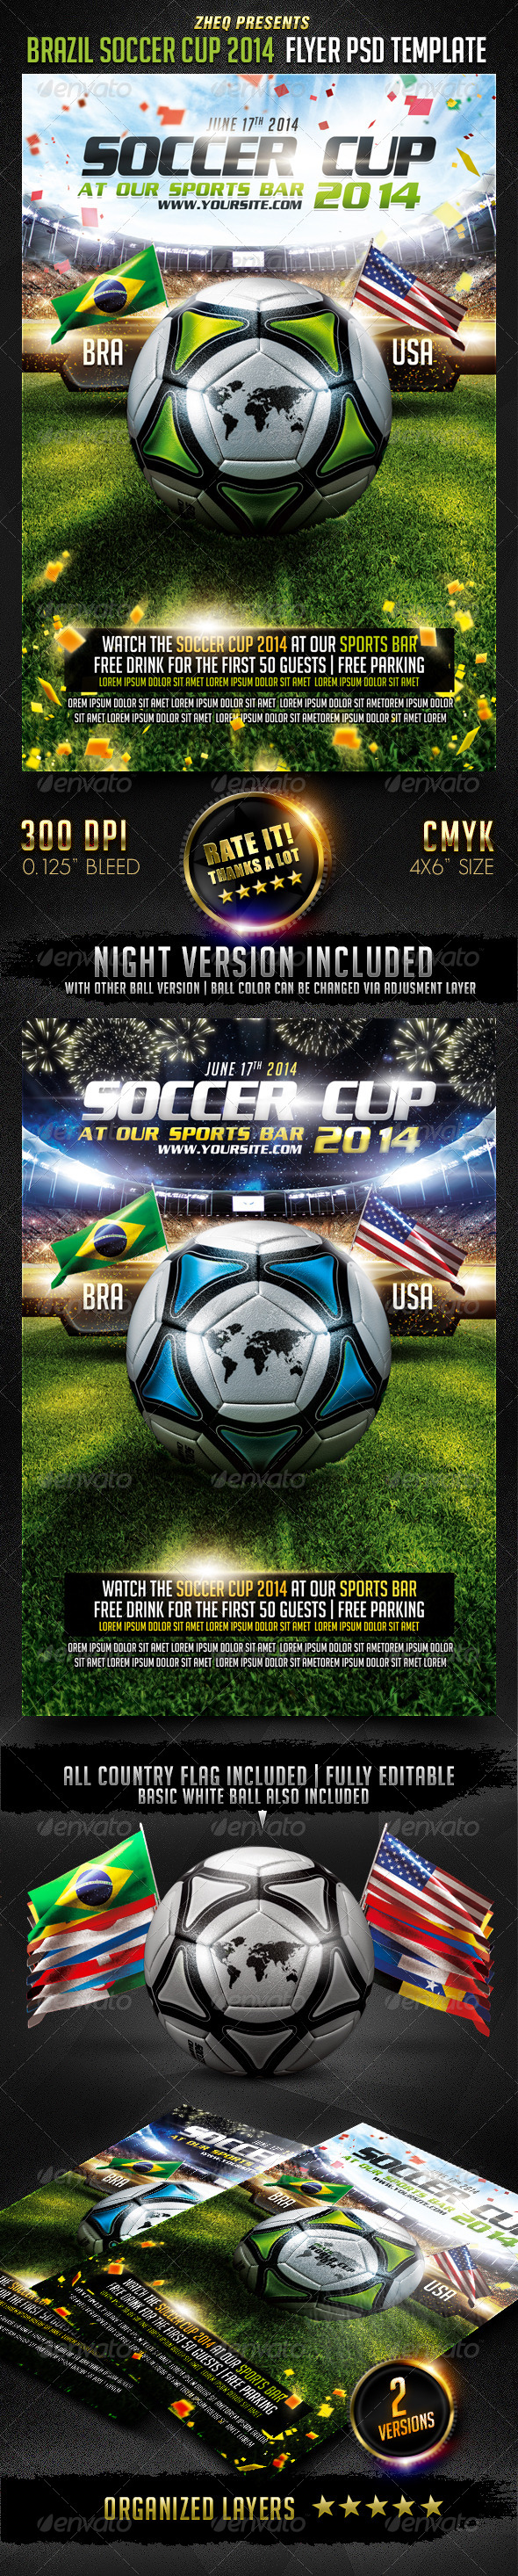 GraphicRiver Brazil Soccer Cup 2014 Flyer Template 7643626